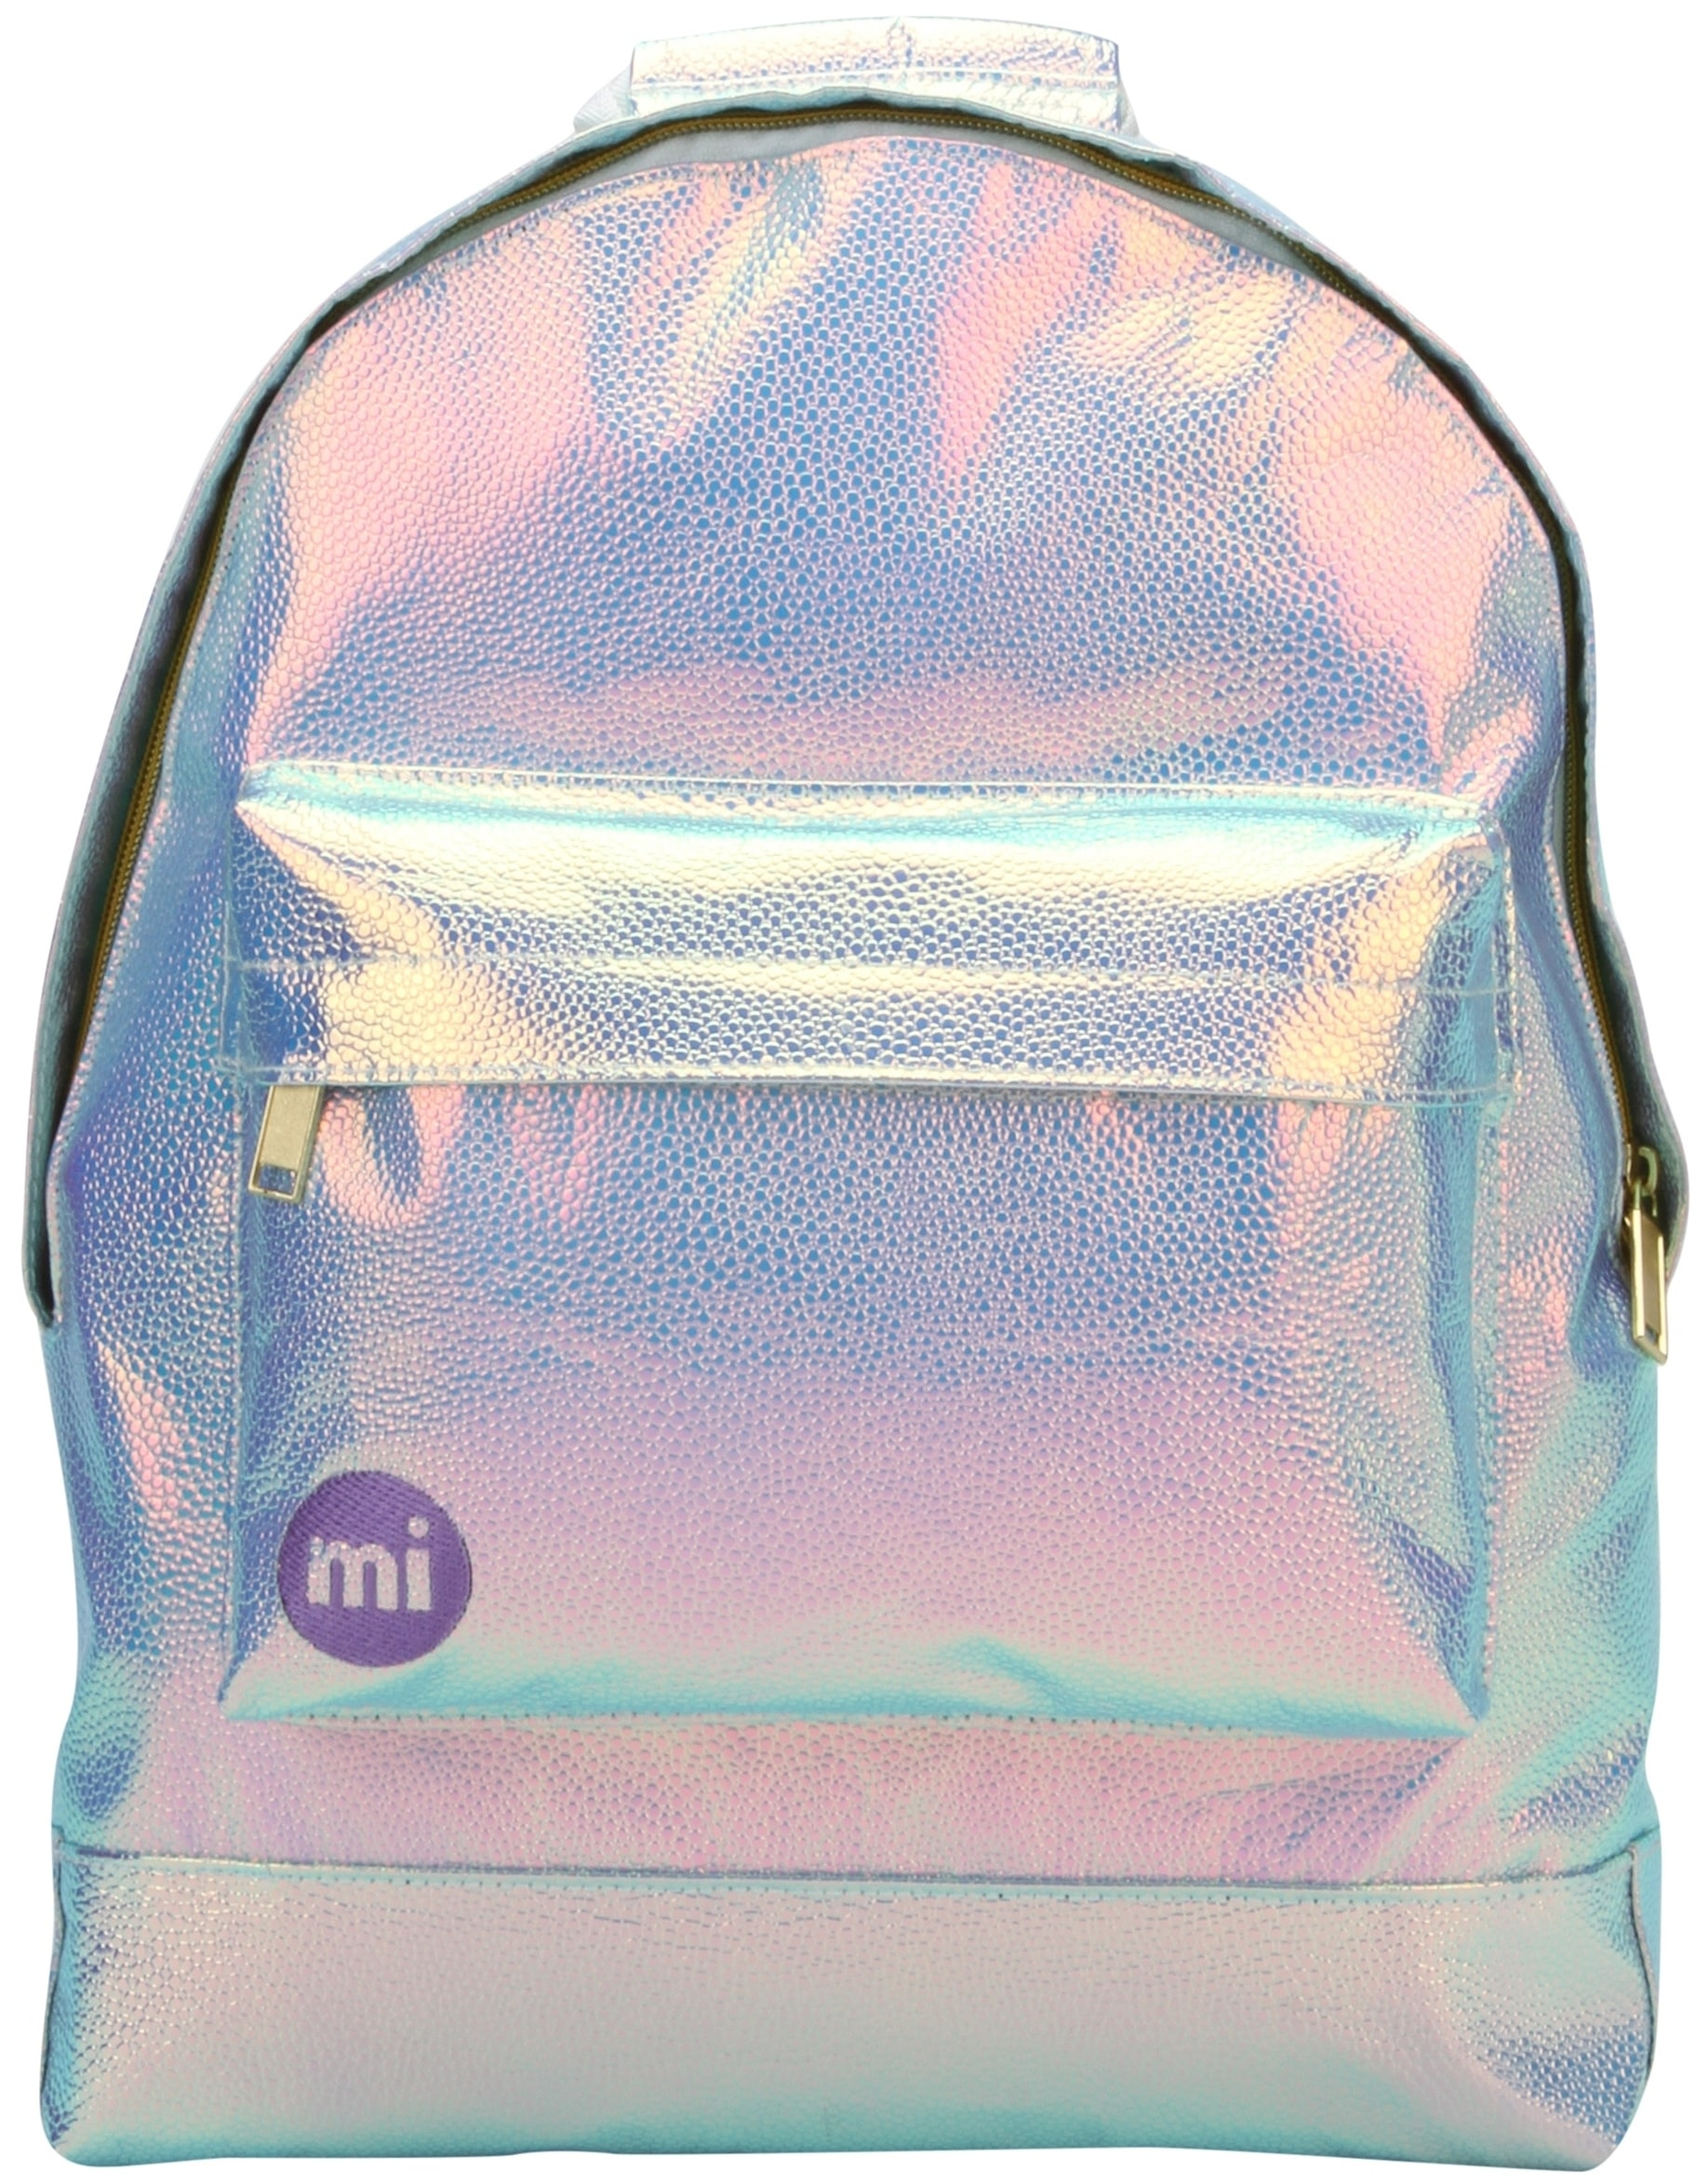 MiPac Pebbled Backpack  Iridium